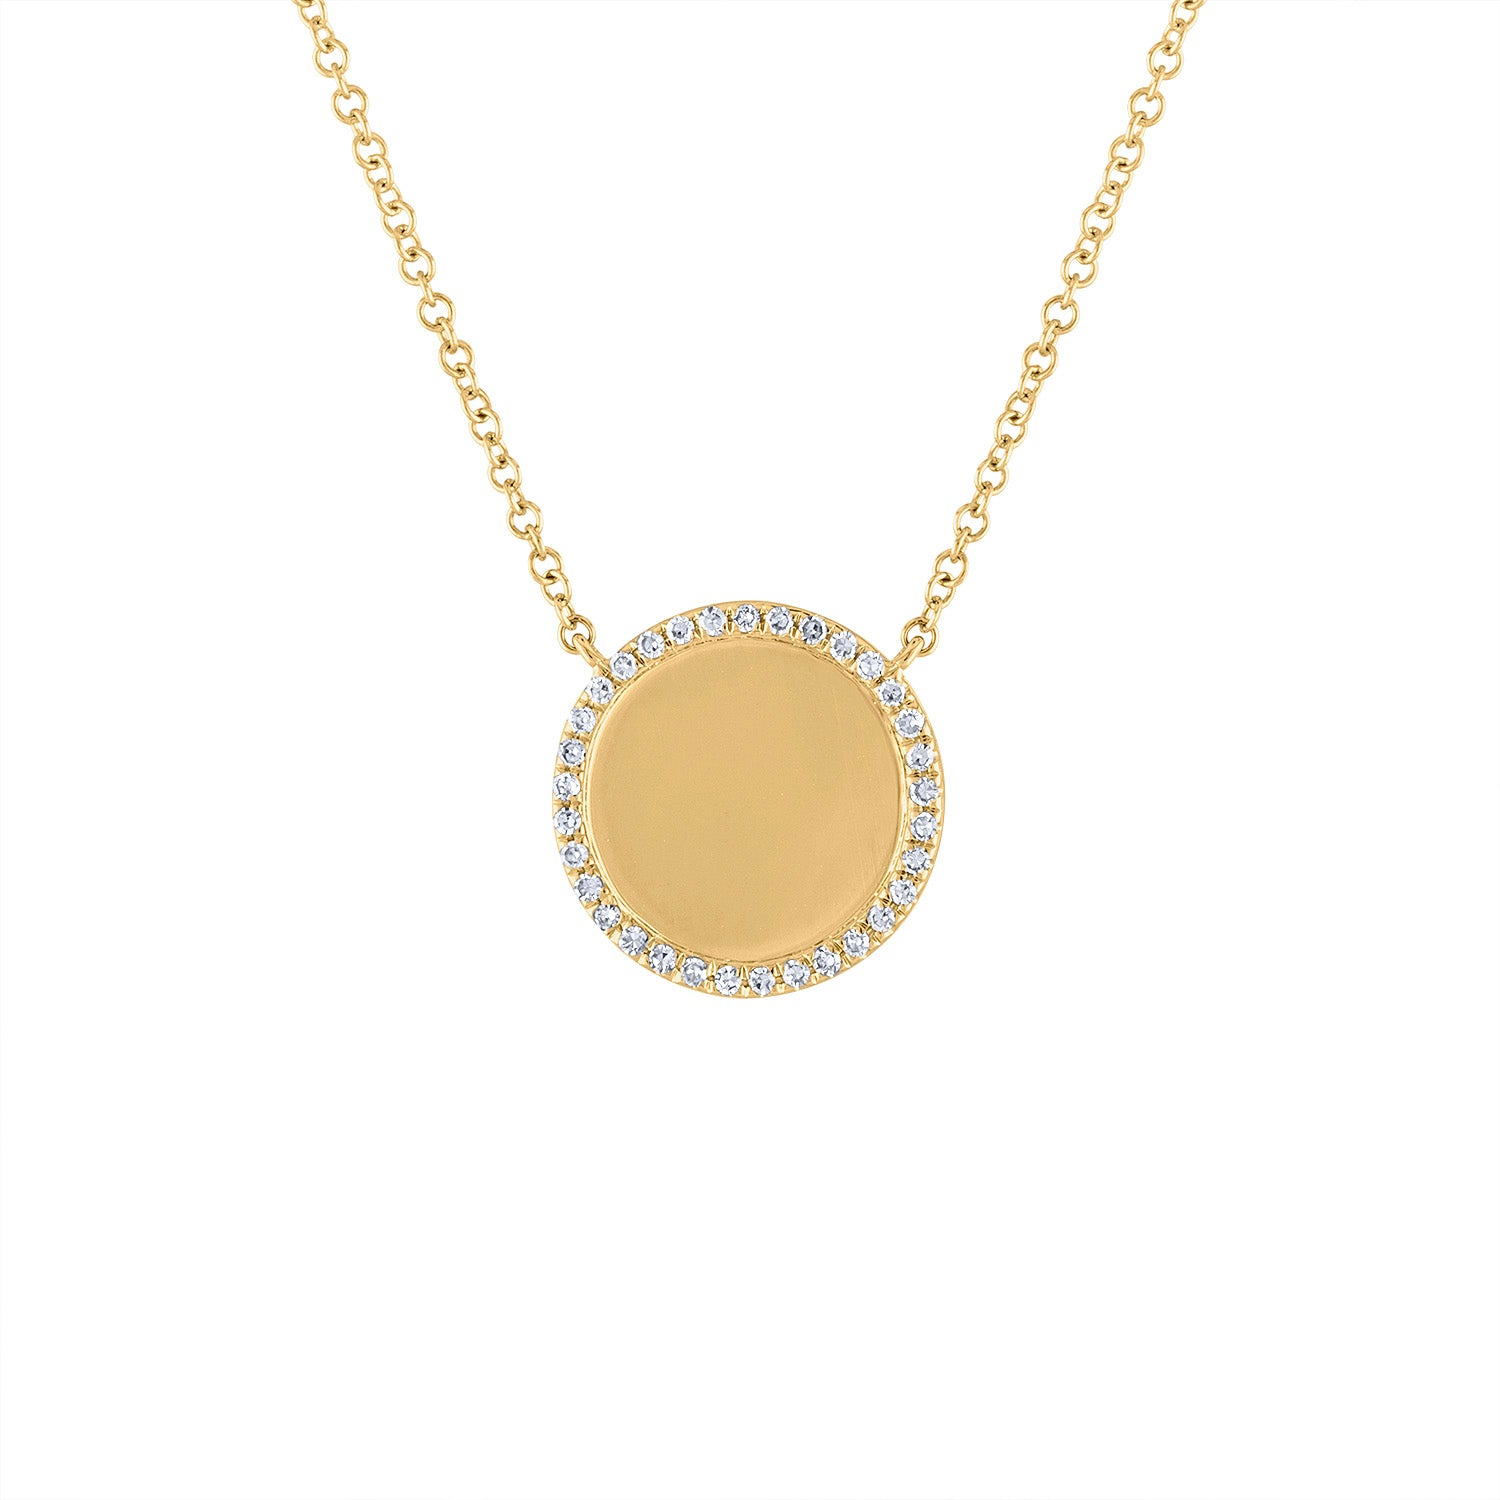 14KT GOLD DIAMOND OUTLINE DISK NECKLACE